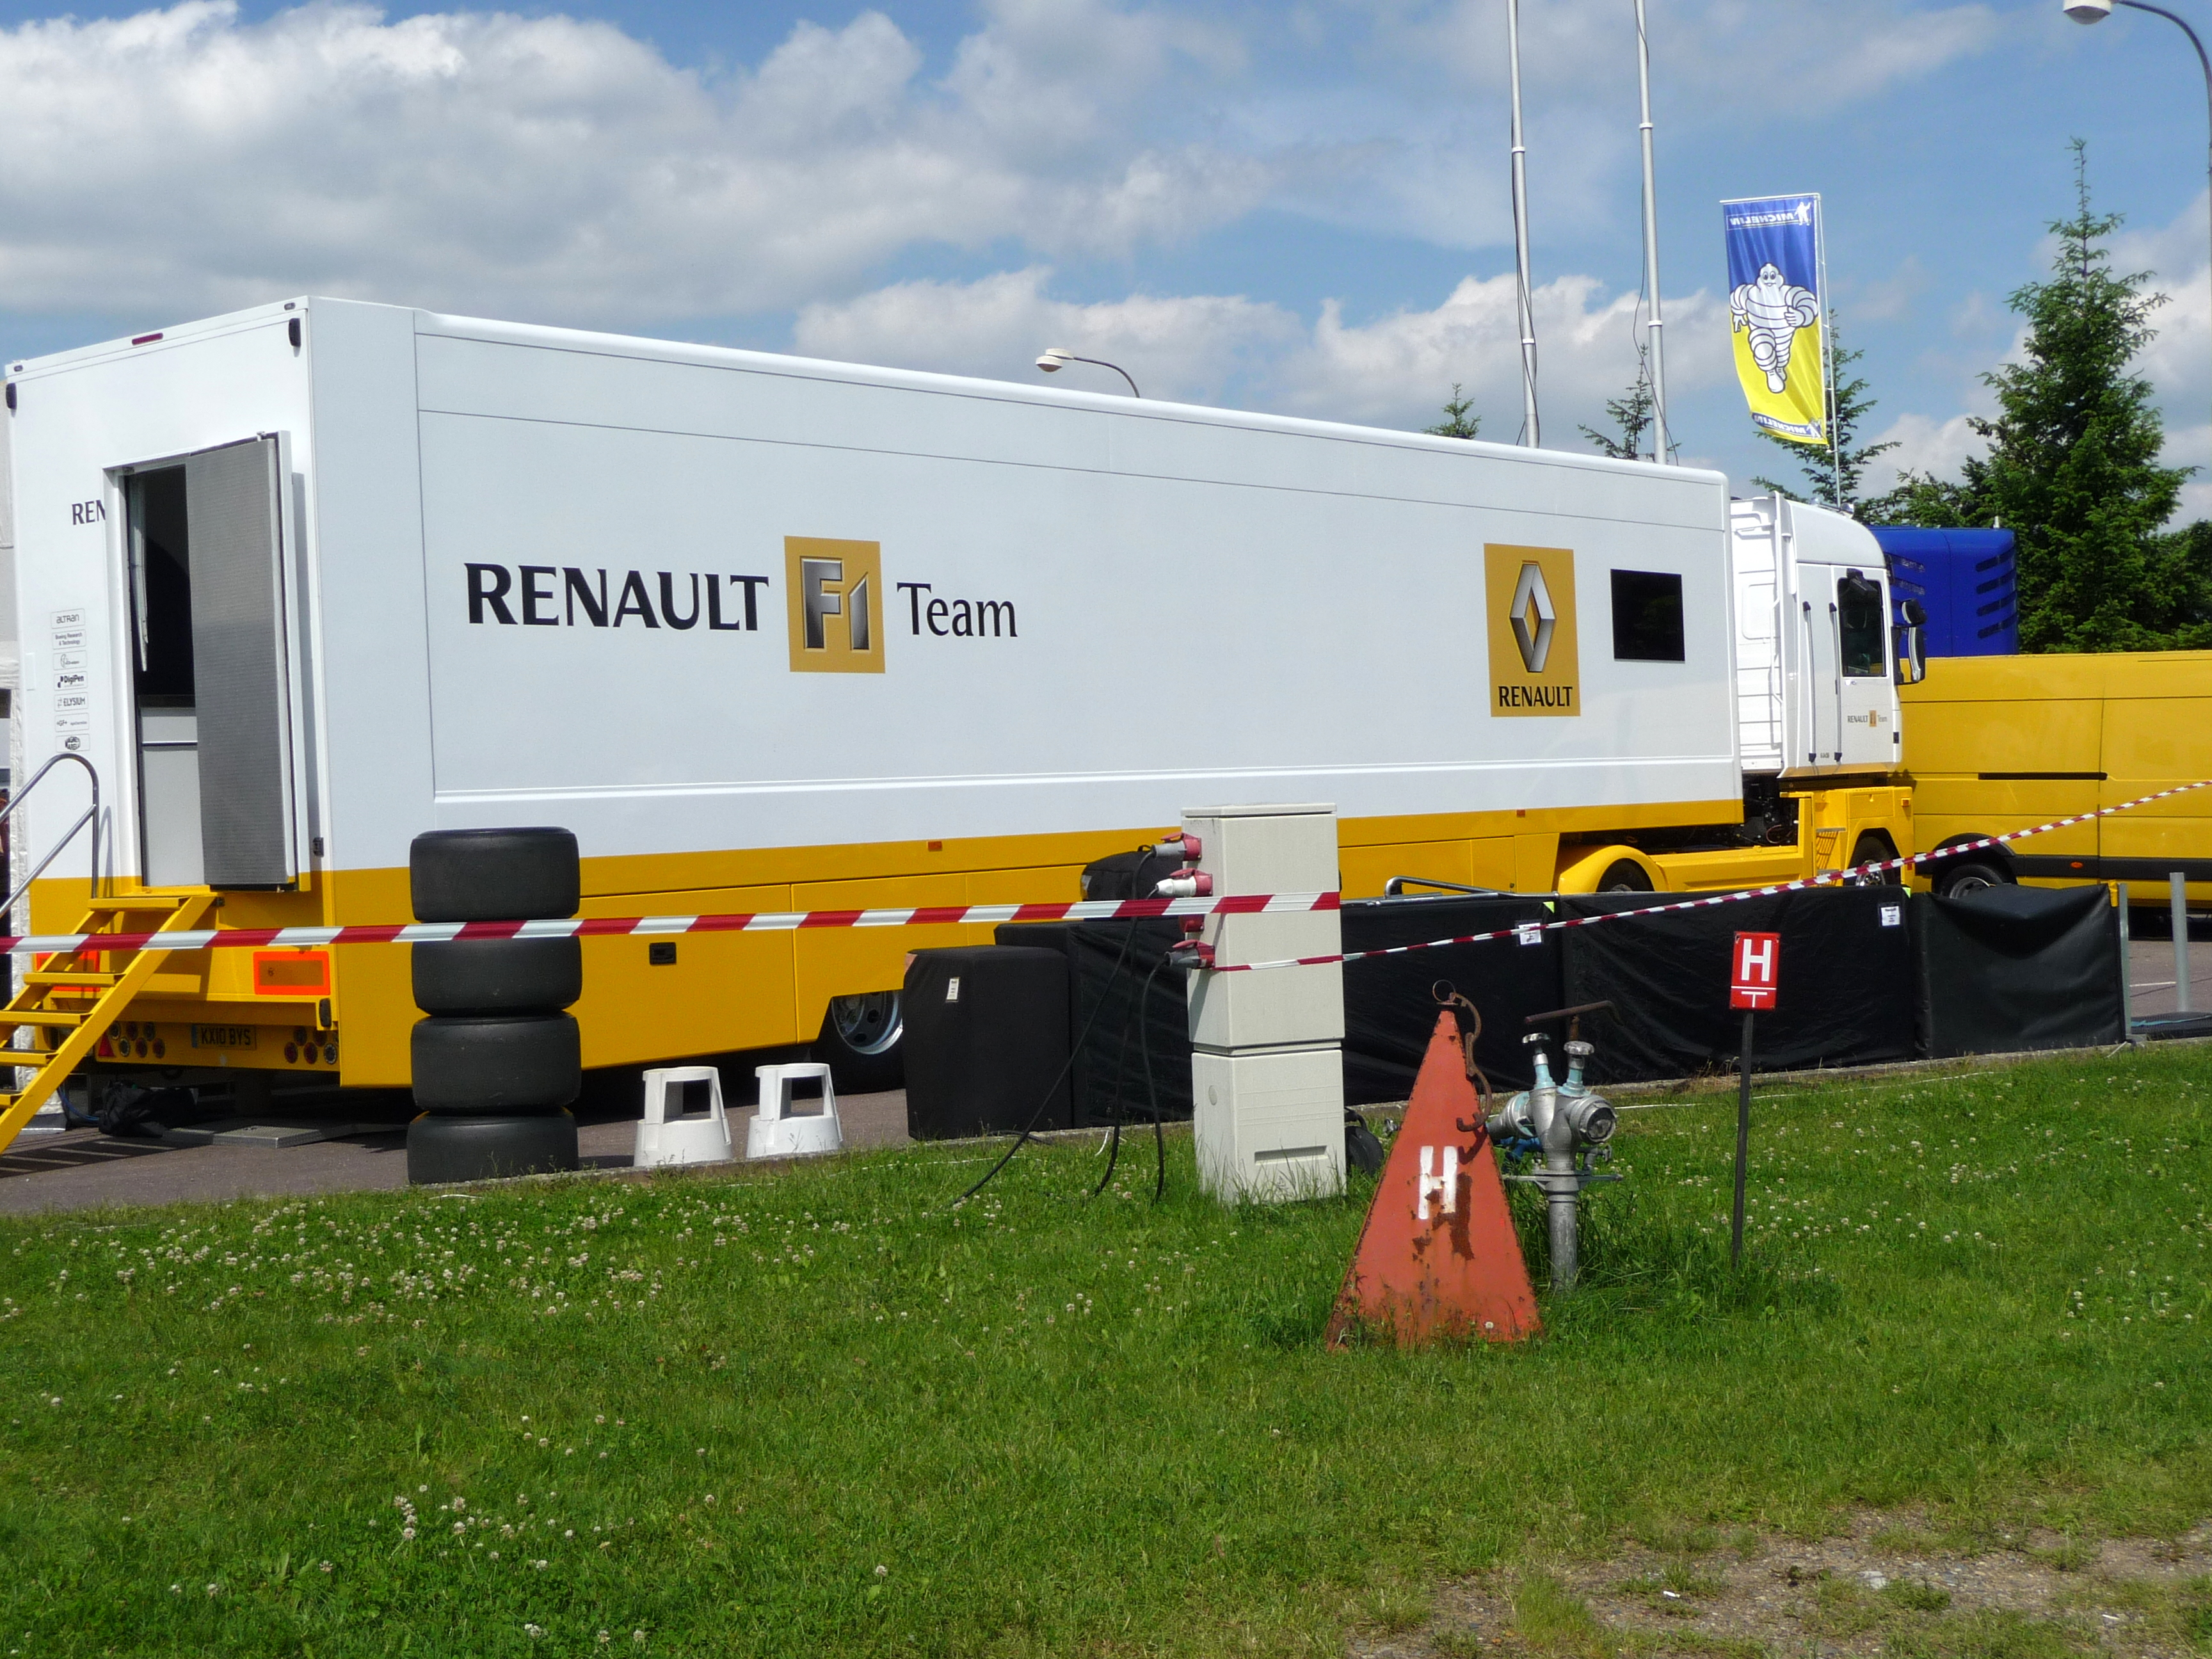 File renault f1 team garage 2010 brno wsr 11 jpg for Garage renault 94